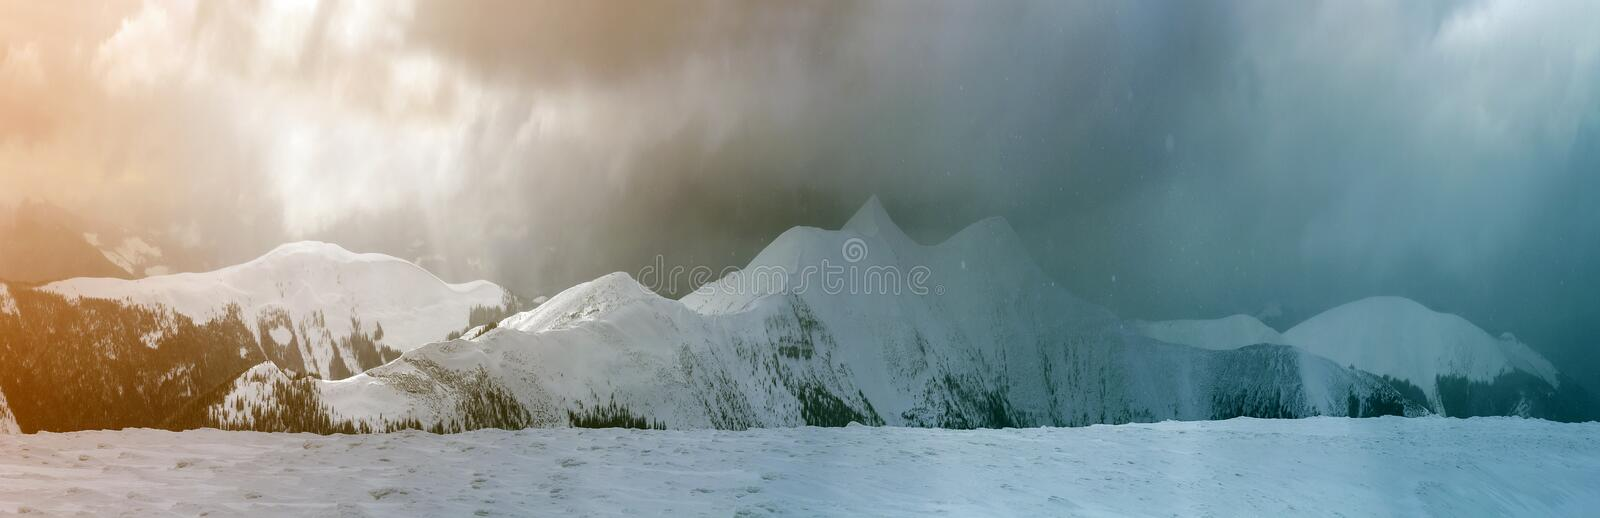 Winter mountain view in Carpathian mountains with dramatic clouds.  royalty free stock photo